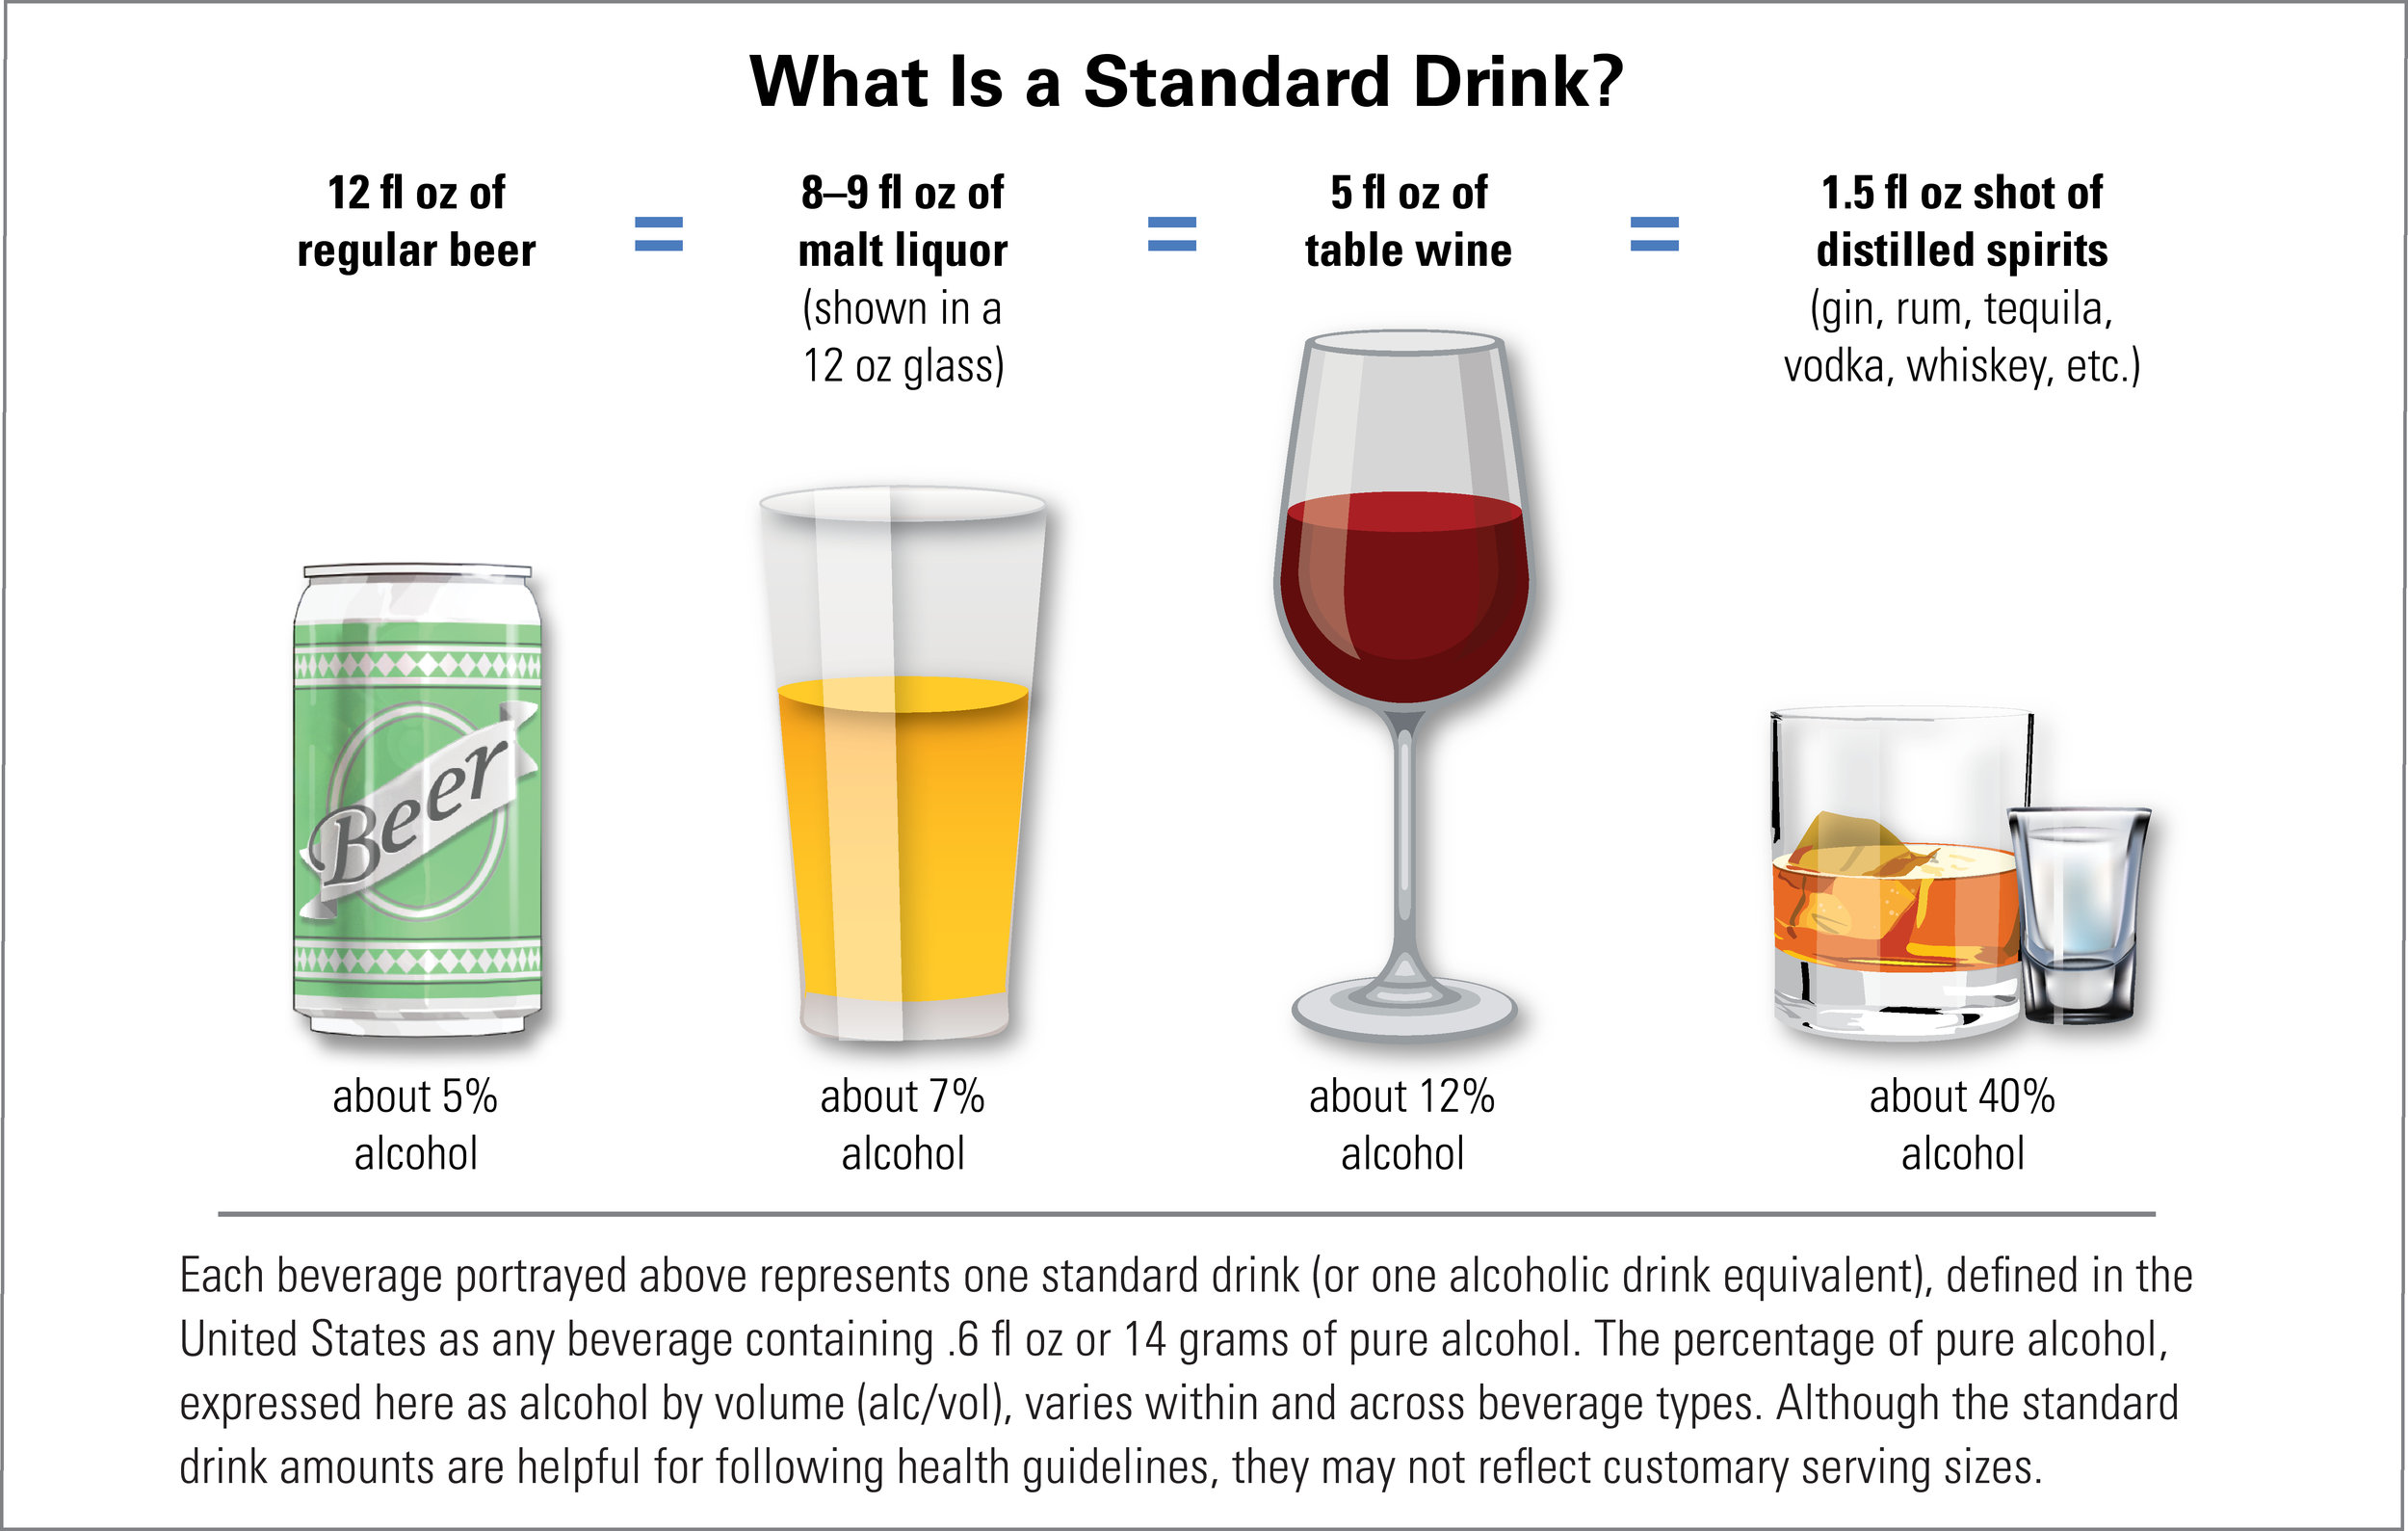 National Institute on Alcohol Abuse and Alcoholism. What is a Standard Drink? Retrieved from    https://www.niaaa.nih.gov/alcohol-health/overview-alcohol-consumption/what-standard-drink   .